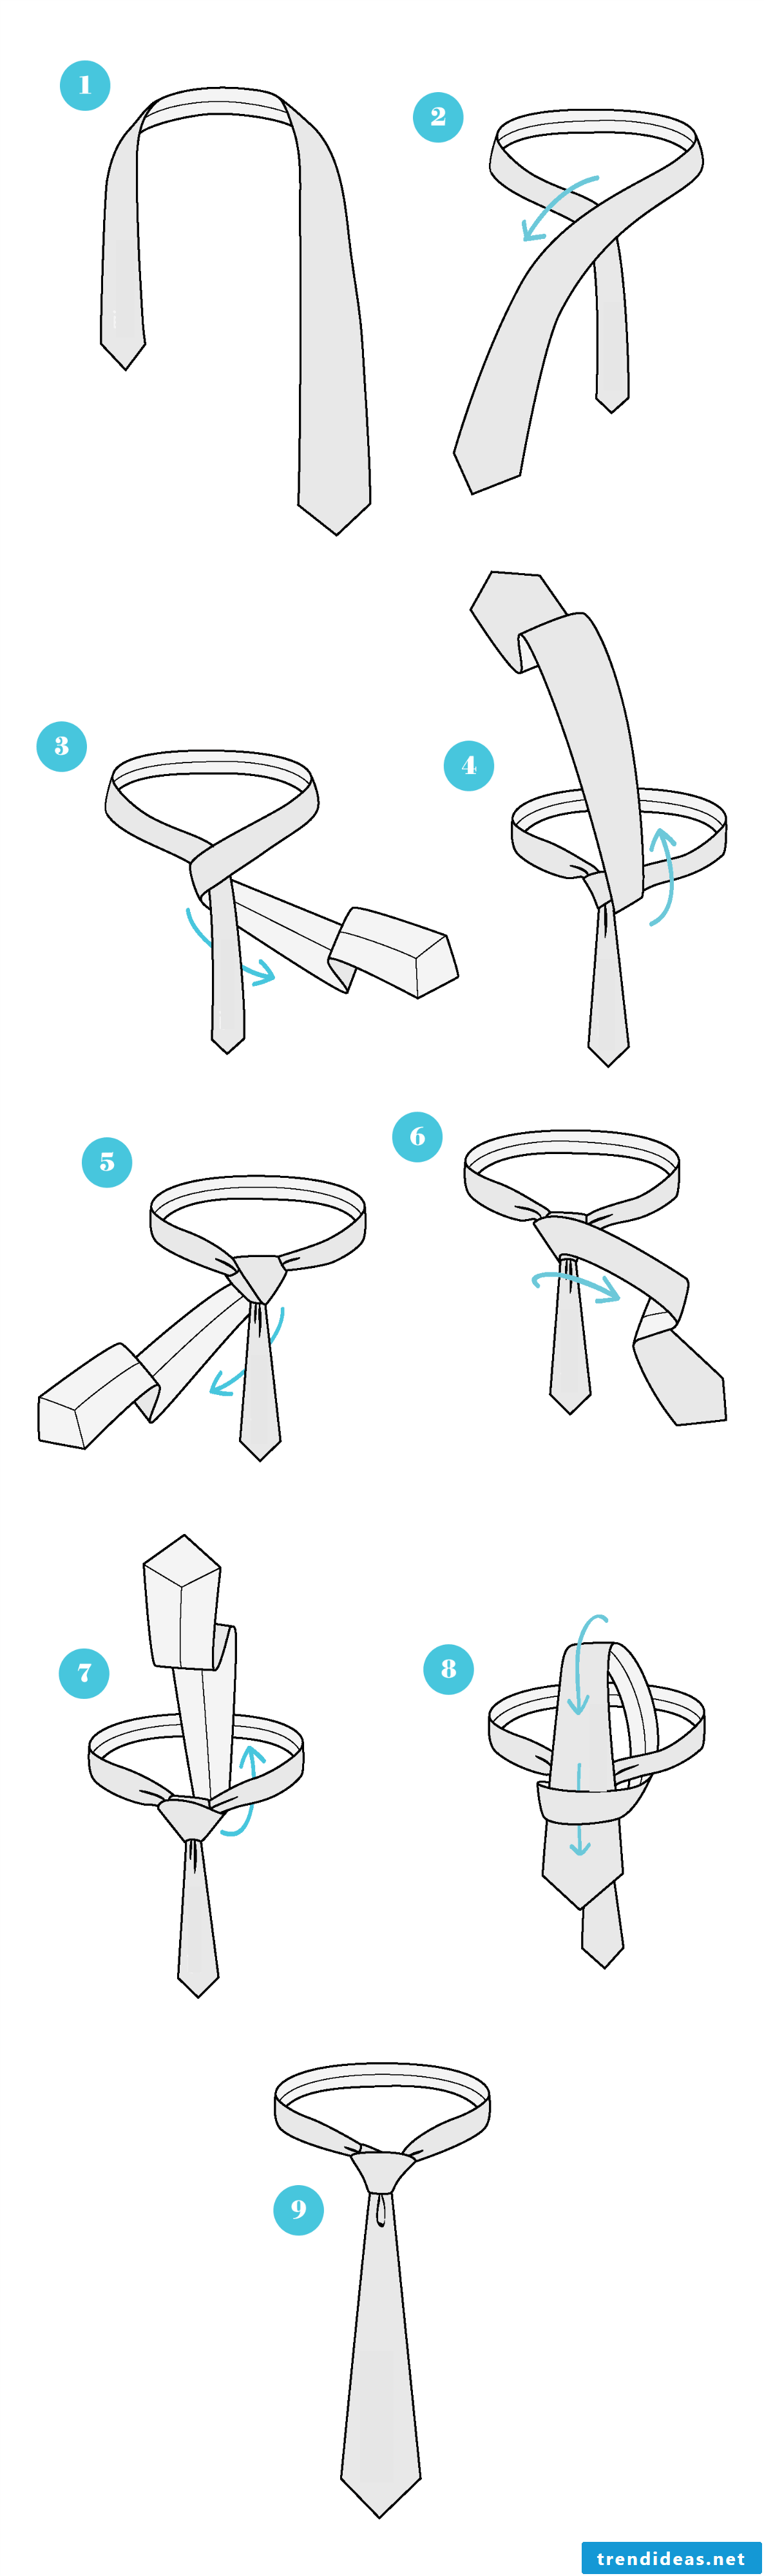 How do I tie a tie with Half Windsor knots?